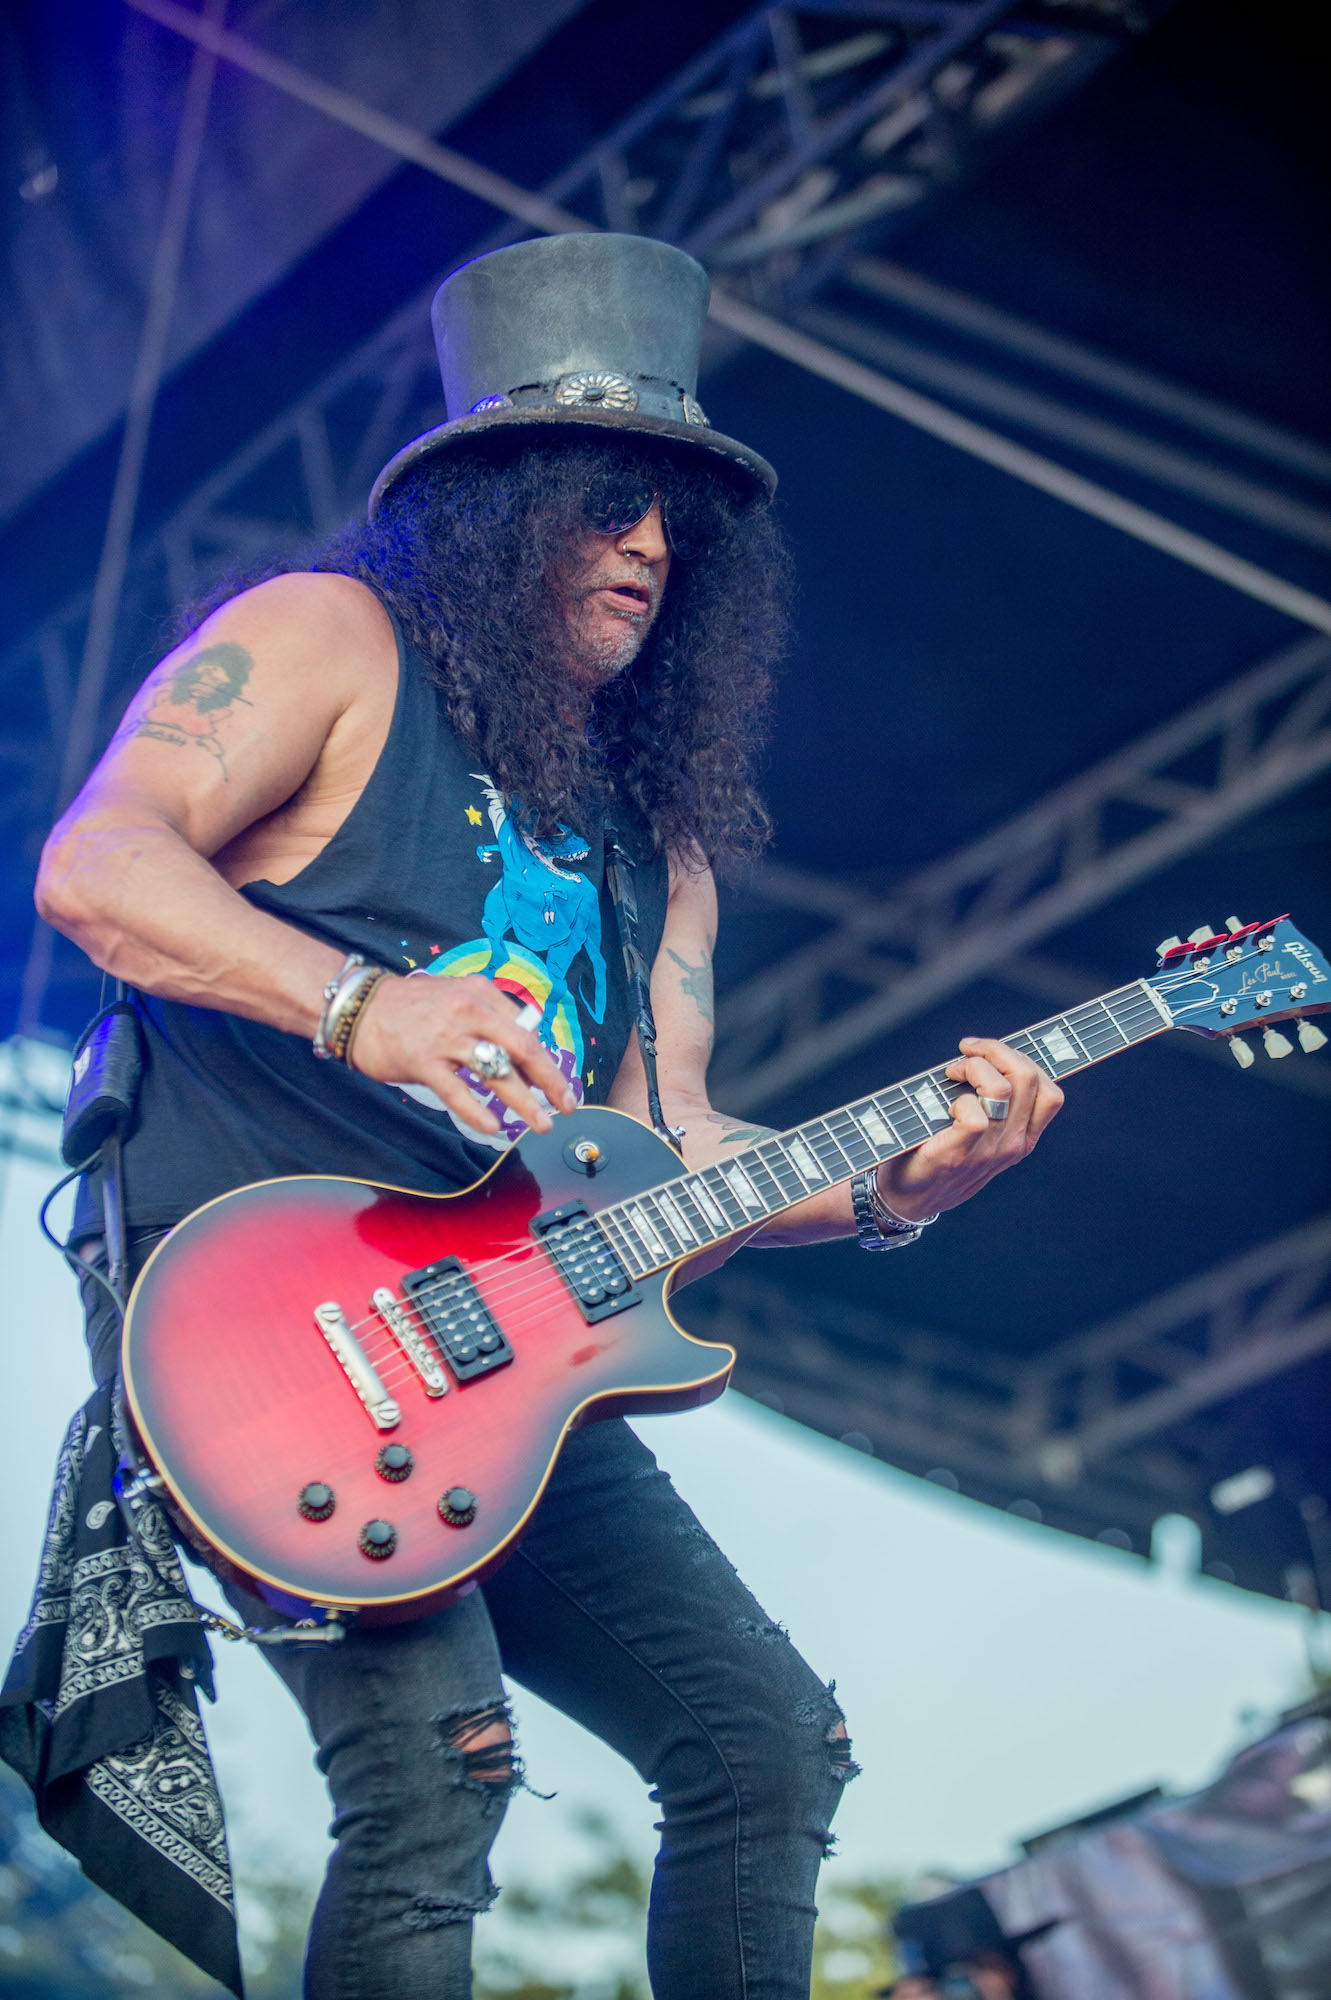 SLASH Featuring Myles Kennedy And The Conspirators Live at Lollapalooza [GALLERY] 10